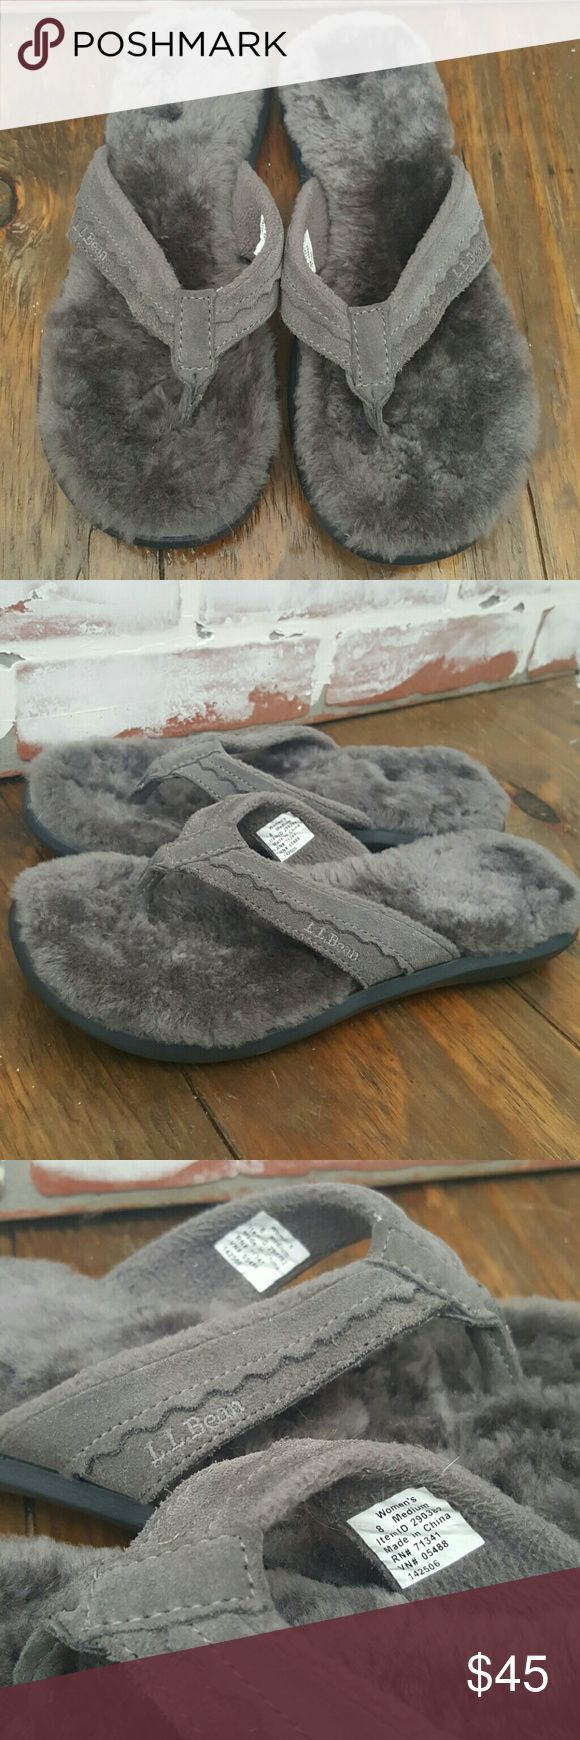 L.L.Bean Shearling Slippers Flip Flops NWOT Genuine shearling lined flip flops from L.L.BEAN. Like new, only tried on in house. Beautiful silvery gray shearling keeps your feet cushioned and cozy around the house or running errands. Heavy duty rubber sole. Trusted brand L.L.BEAN Size 8 womens. In my experience, LL Bean sizes run a little large so these would be comfortable for a true 8 to a 8.5. I'm 7.5-8 and they feel just a tad too large for me is why I'm selling. L.L.BEAN  Shoes Slippers